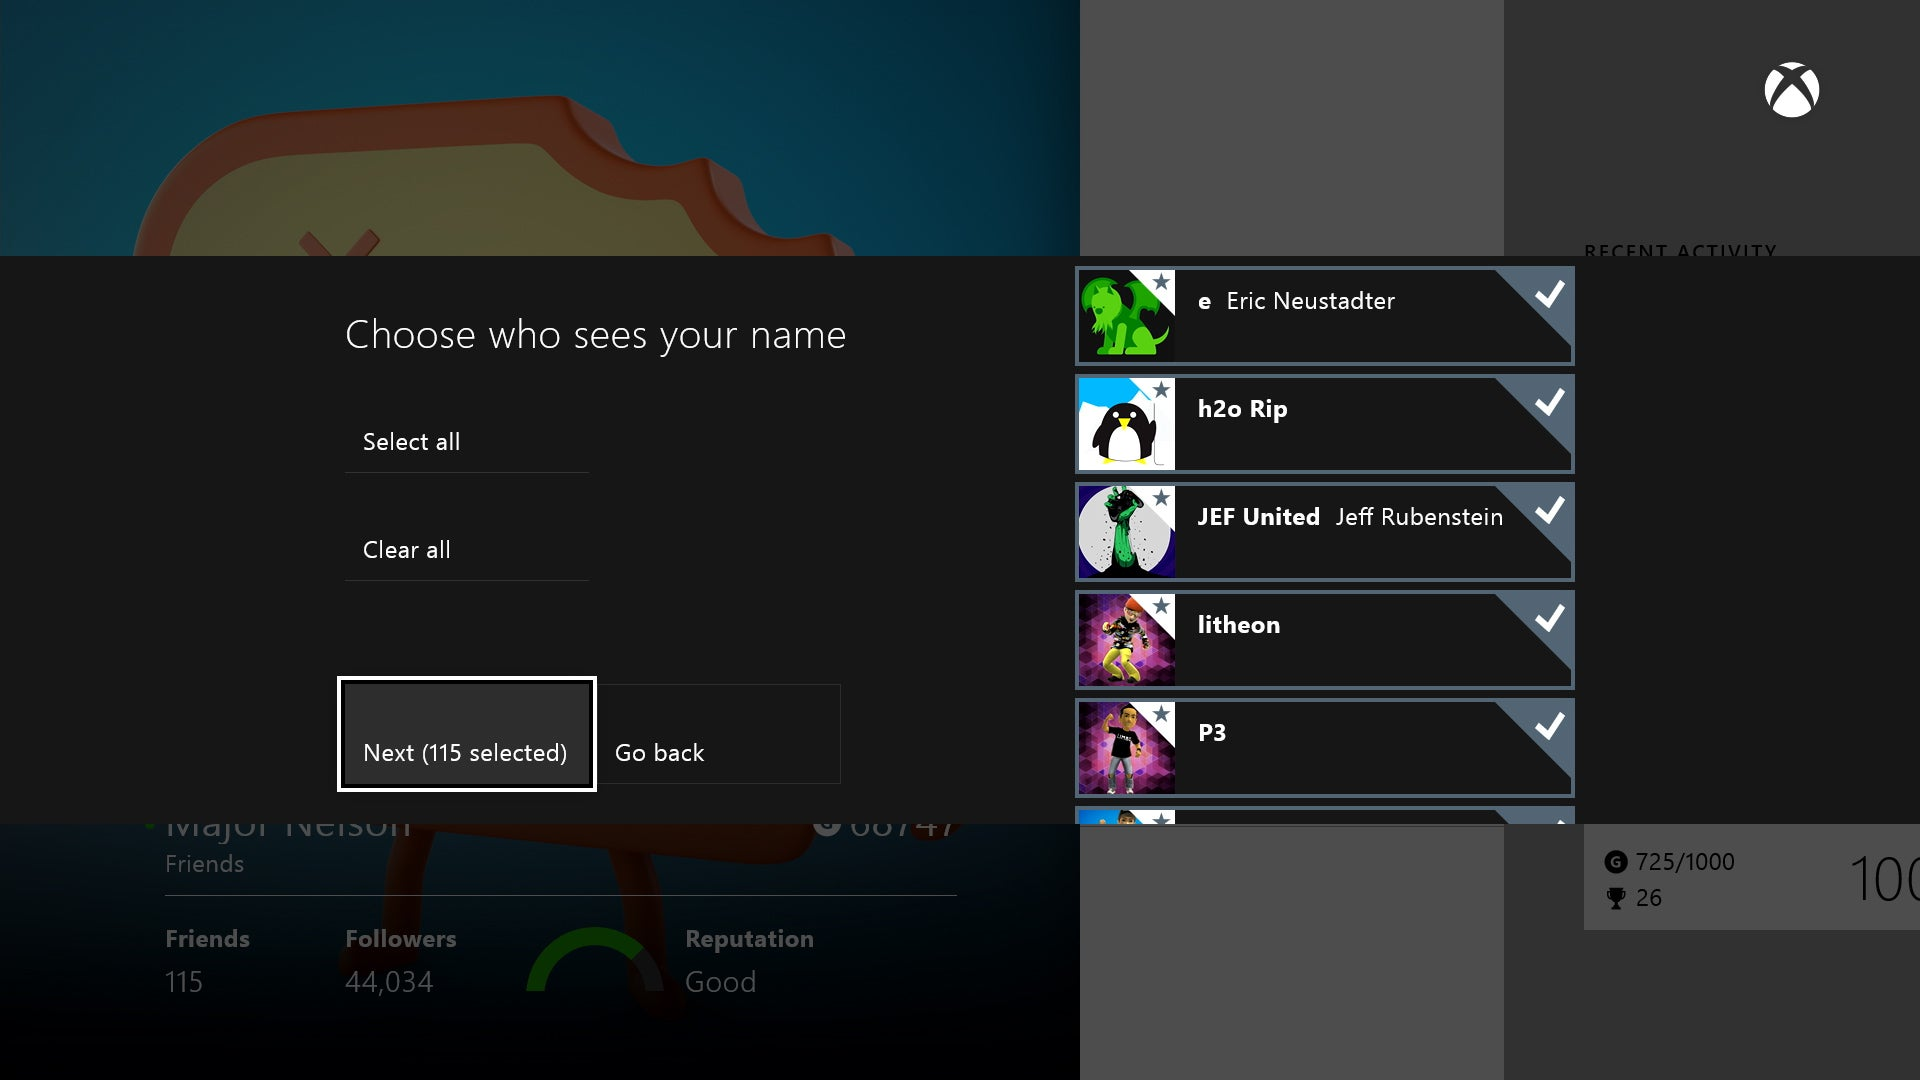 June Xbox One Update Adds Real Name Support And Other Handy Options